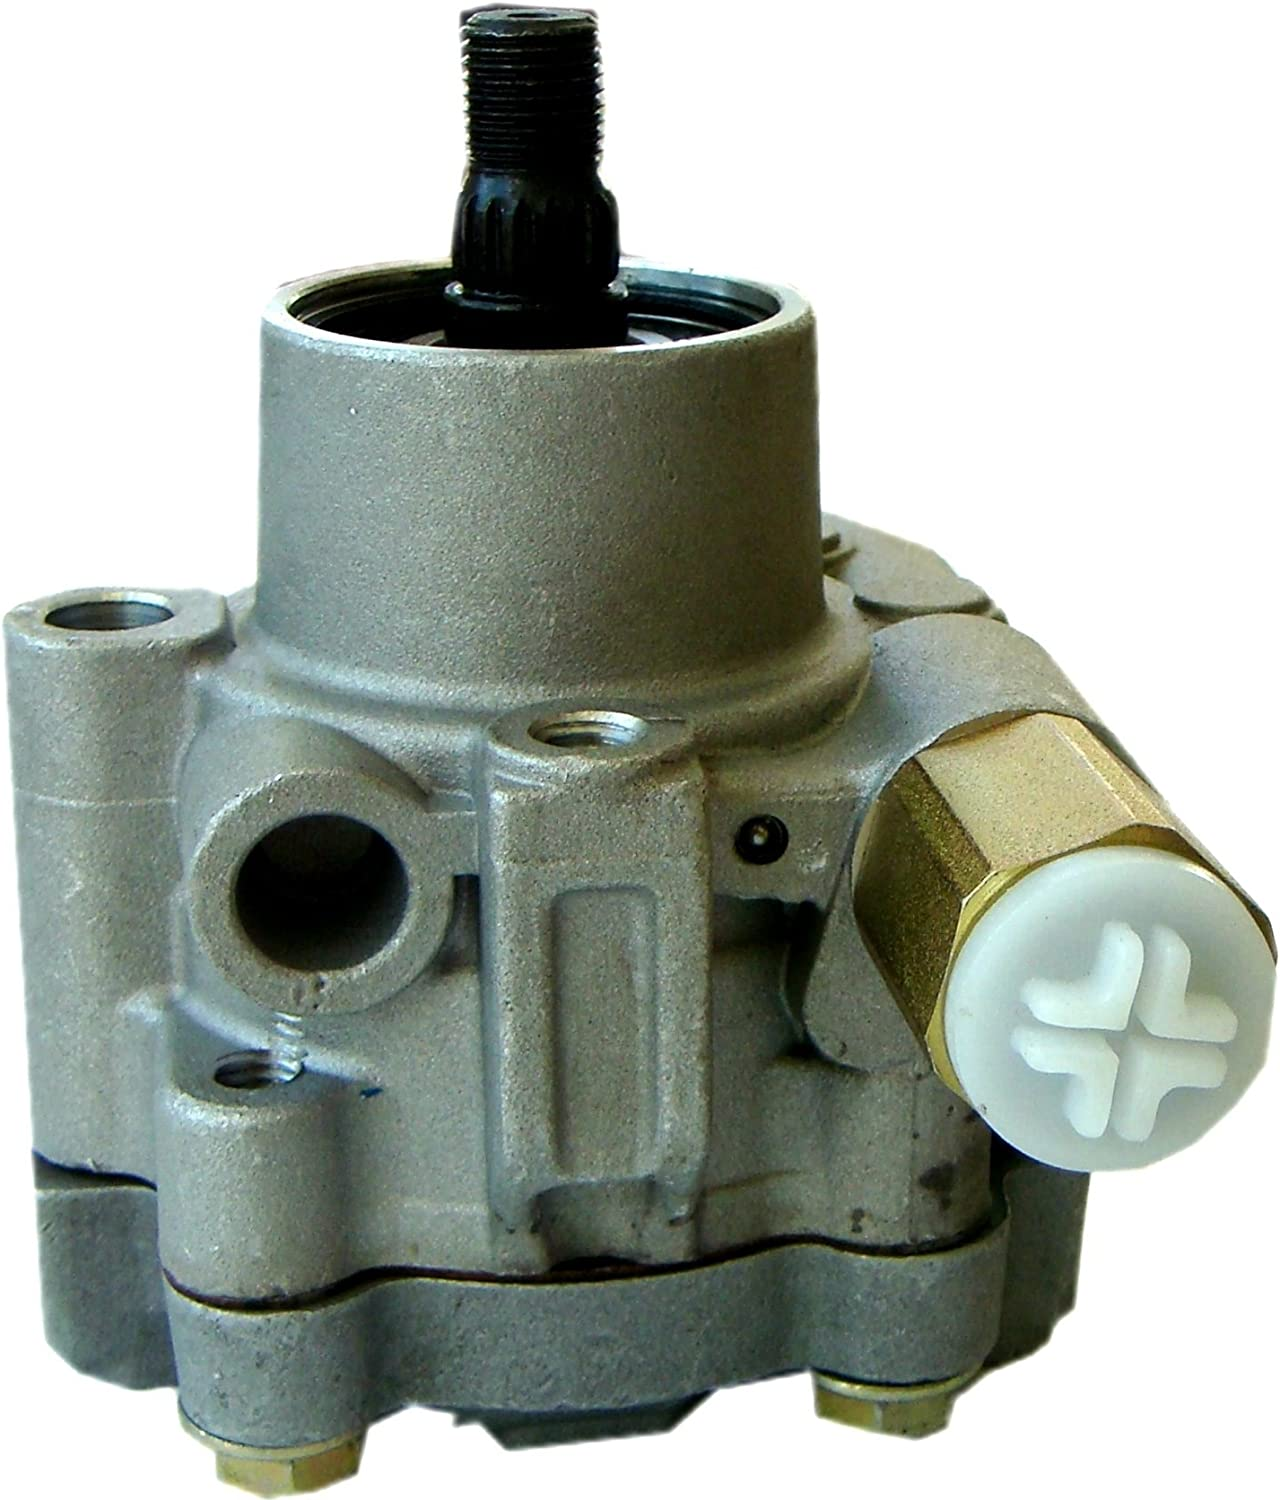 Power Steering Pump for 1999-2004 Nissan Frontier 3.3L V6 2000-2004 Nissan Xterra 3.3L V6 3.3 21-5219 Power Steering Pump V6 Replacement